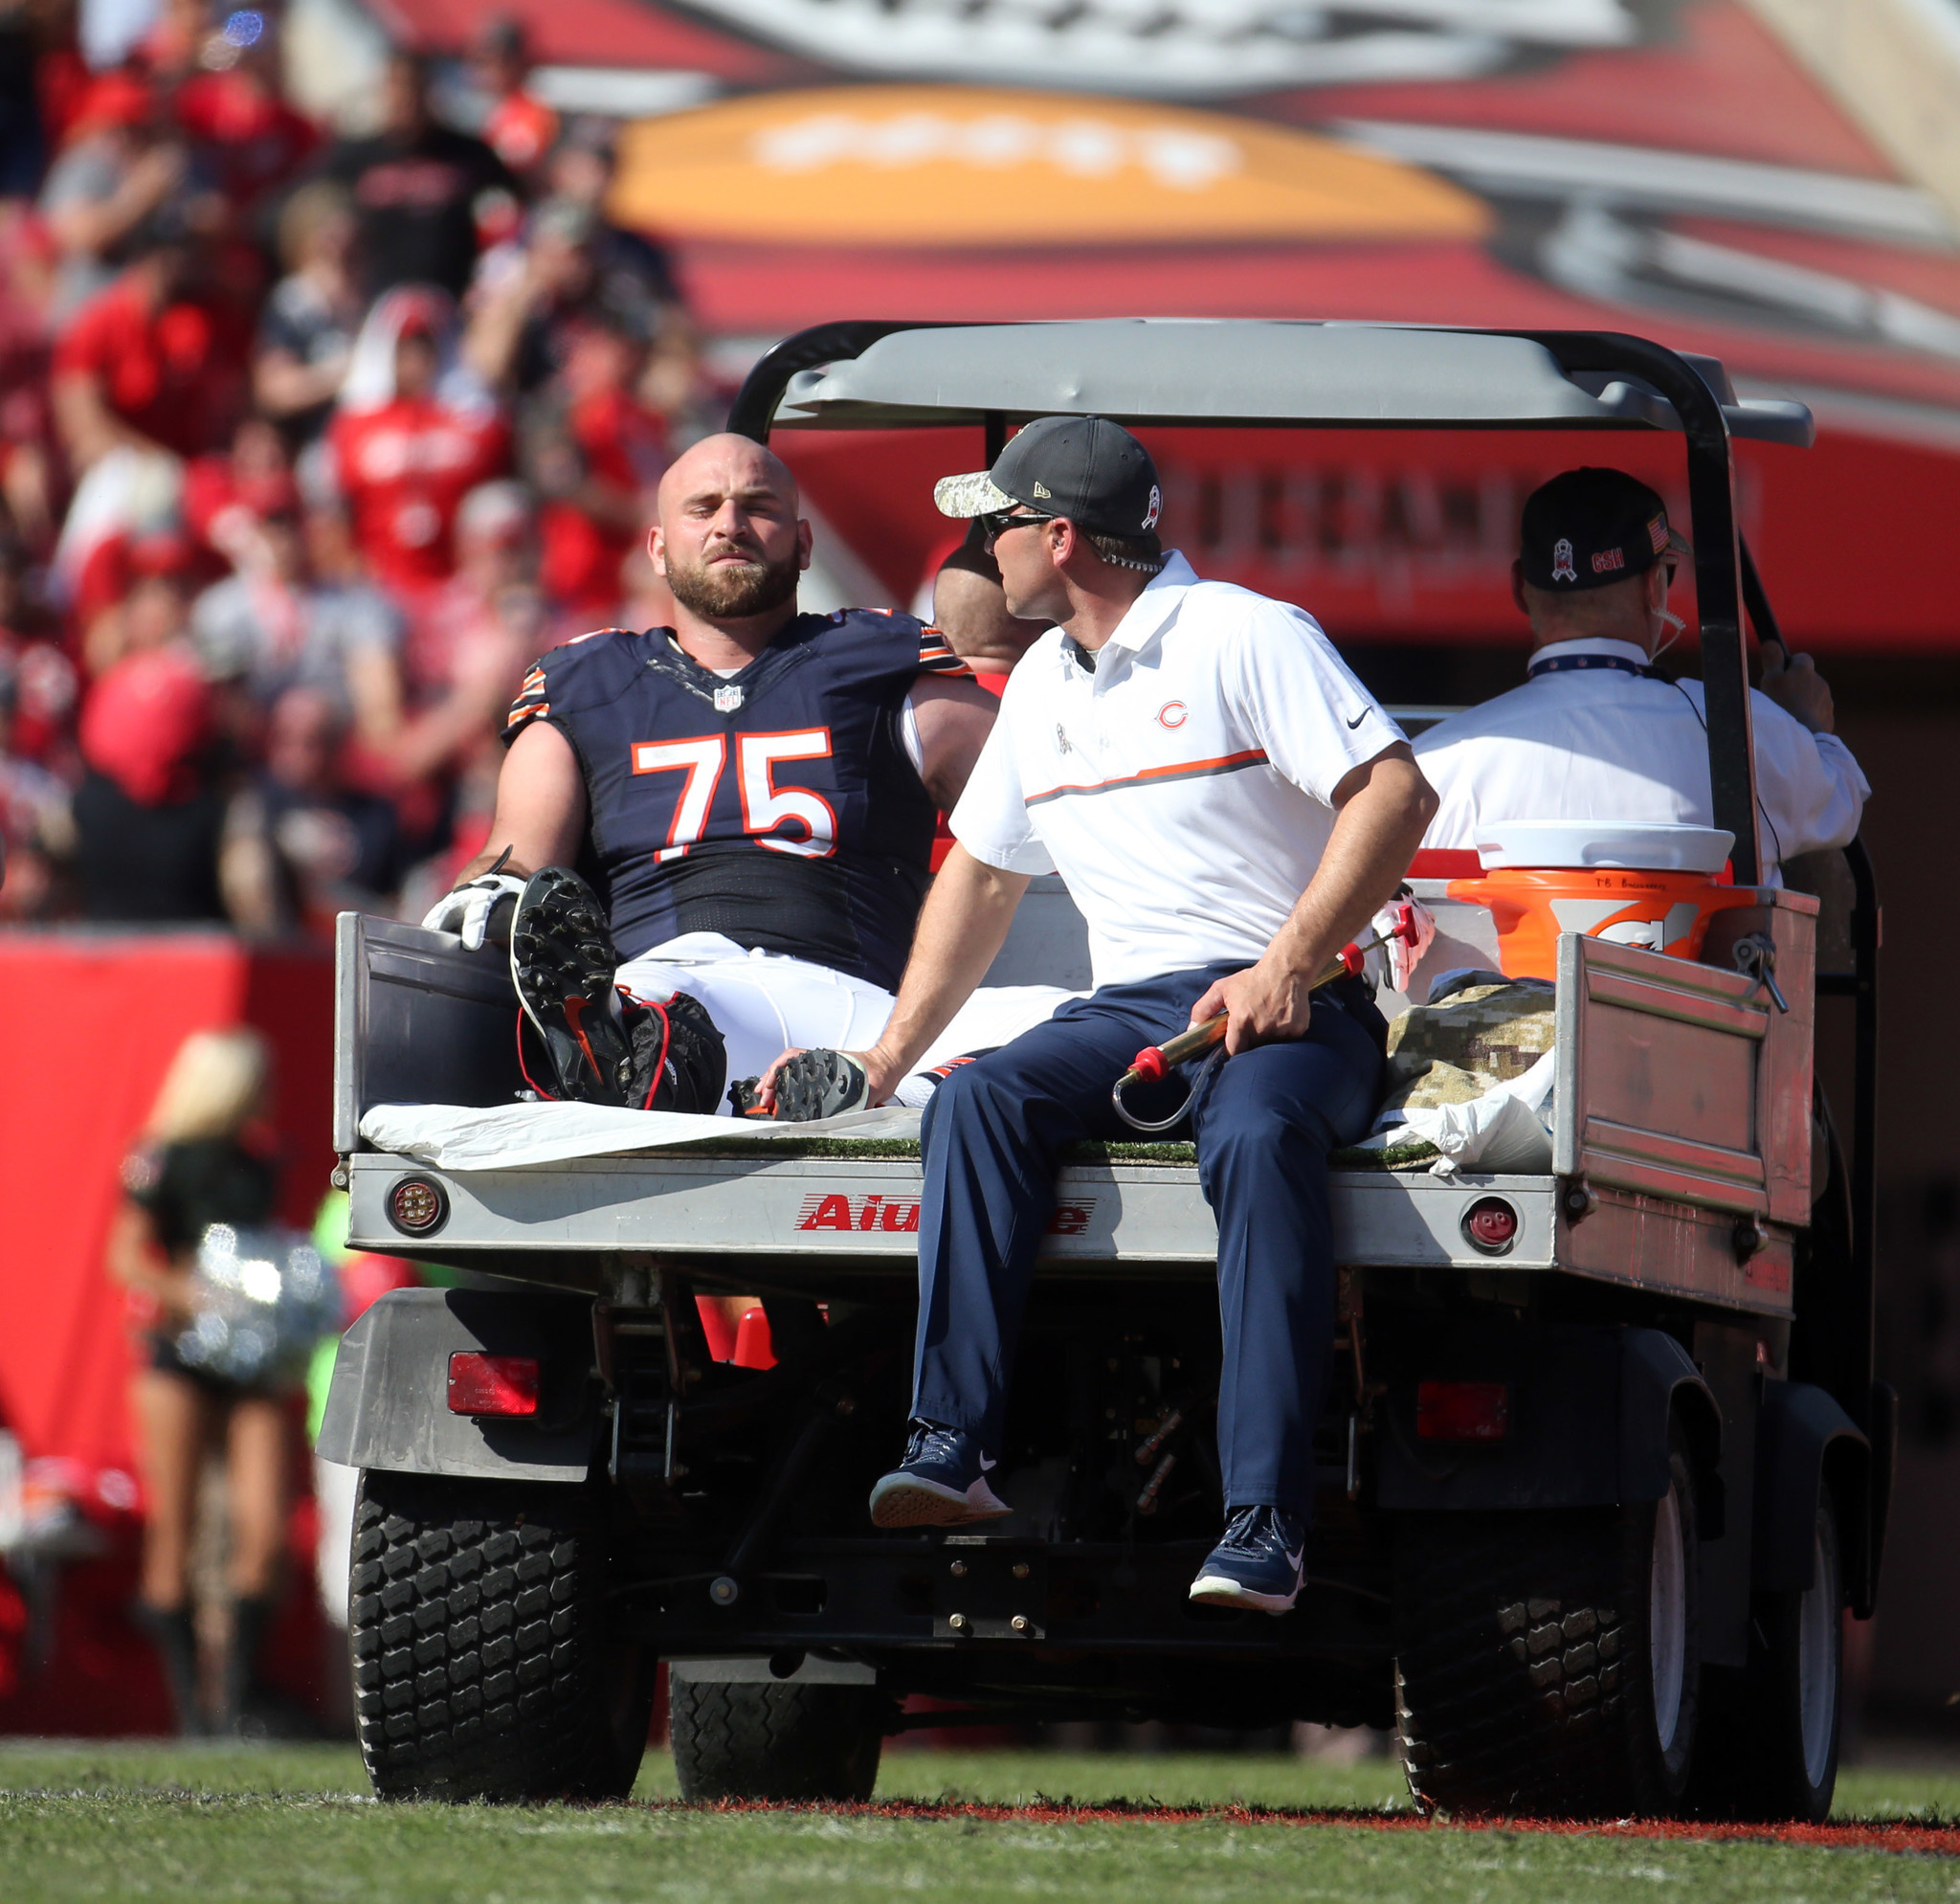 Kyle Long moved to injured reserve as Bears misfortune continues